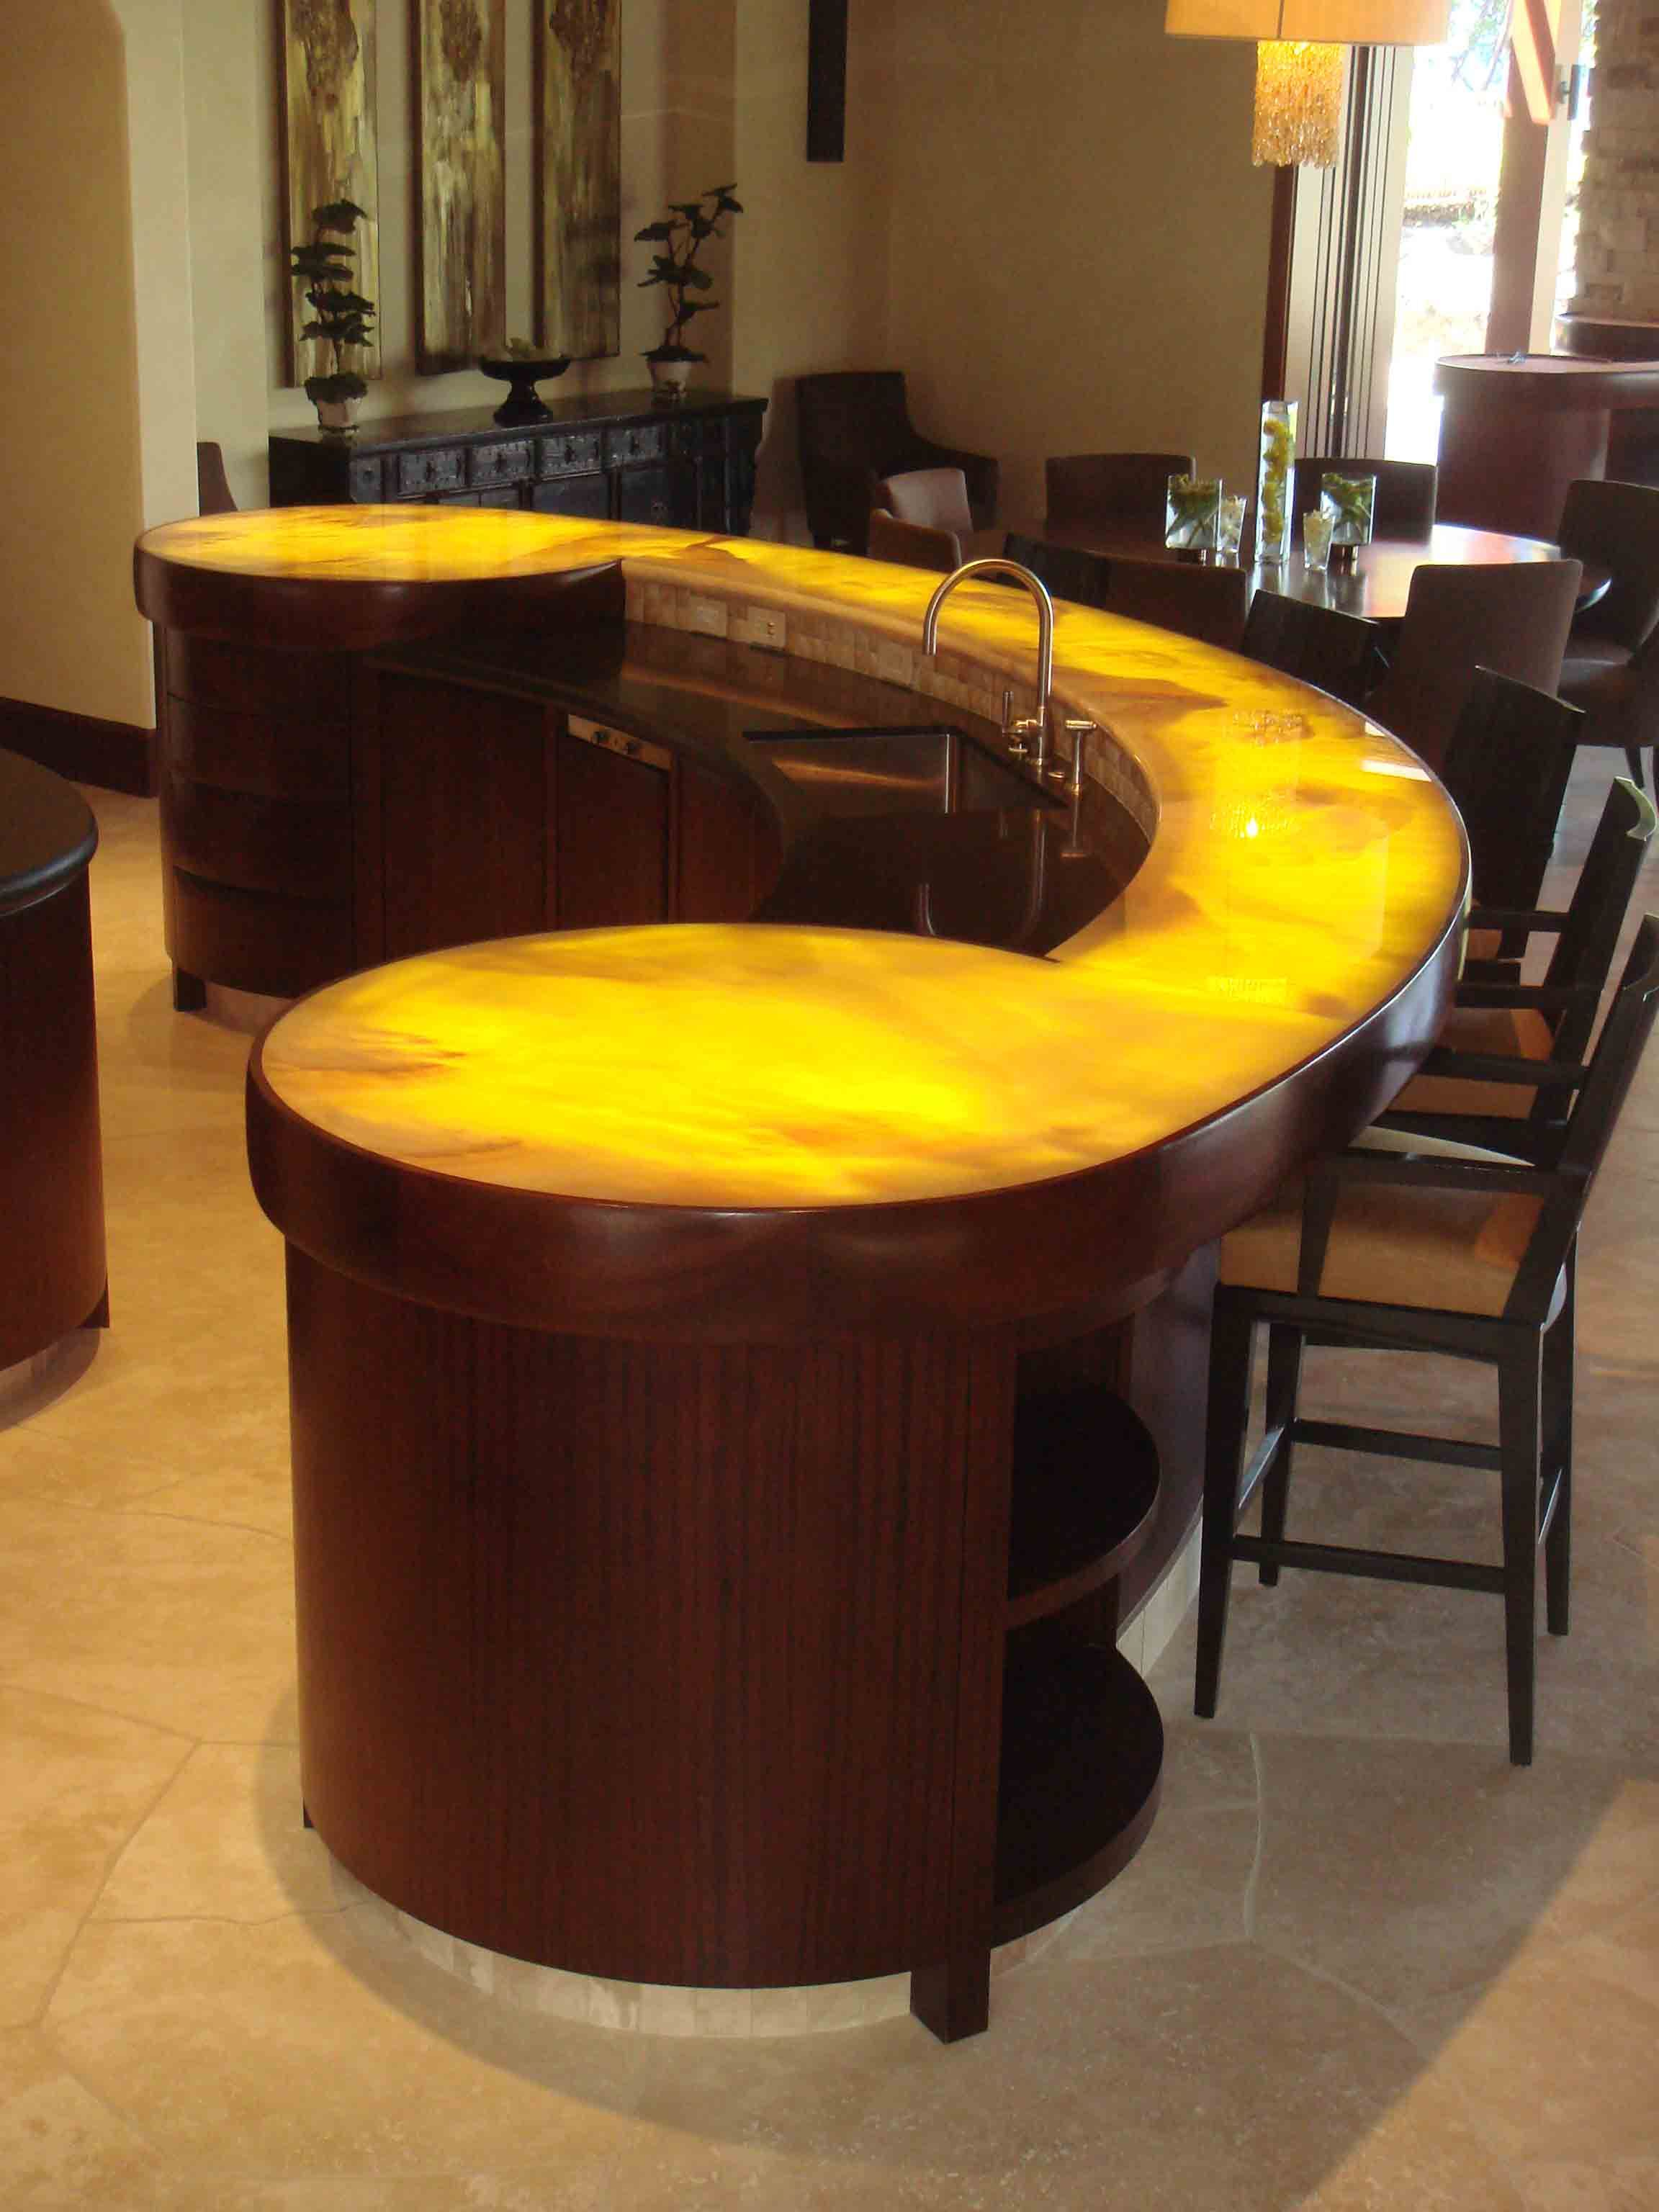 Fetching Modern Bar Counter Designs For Home Design With